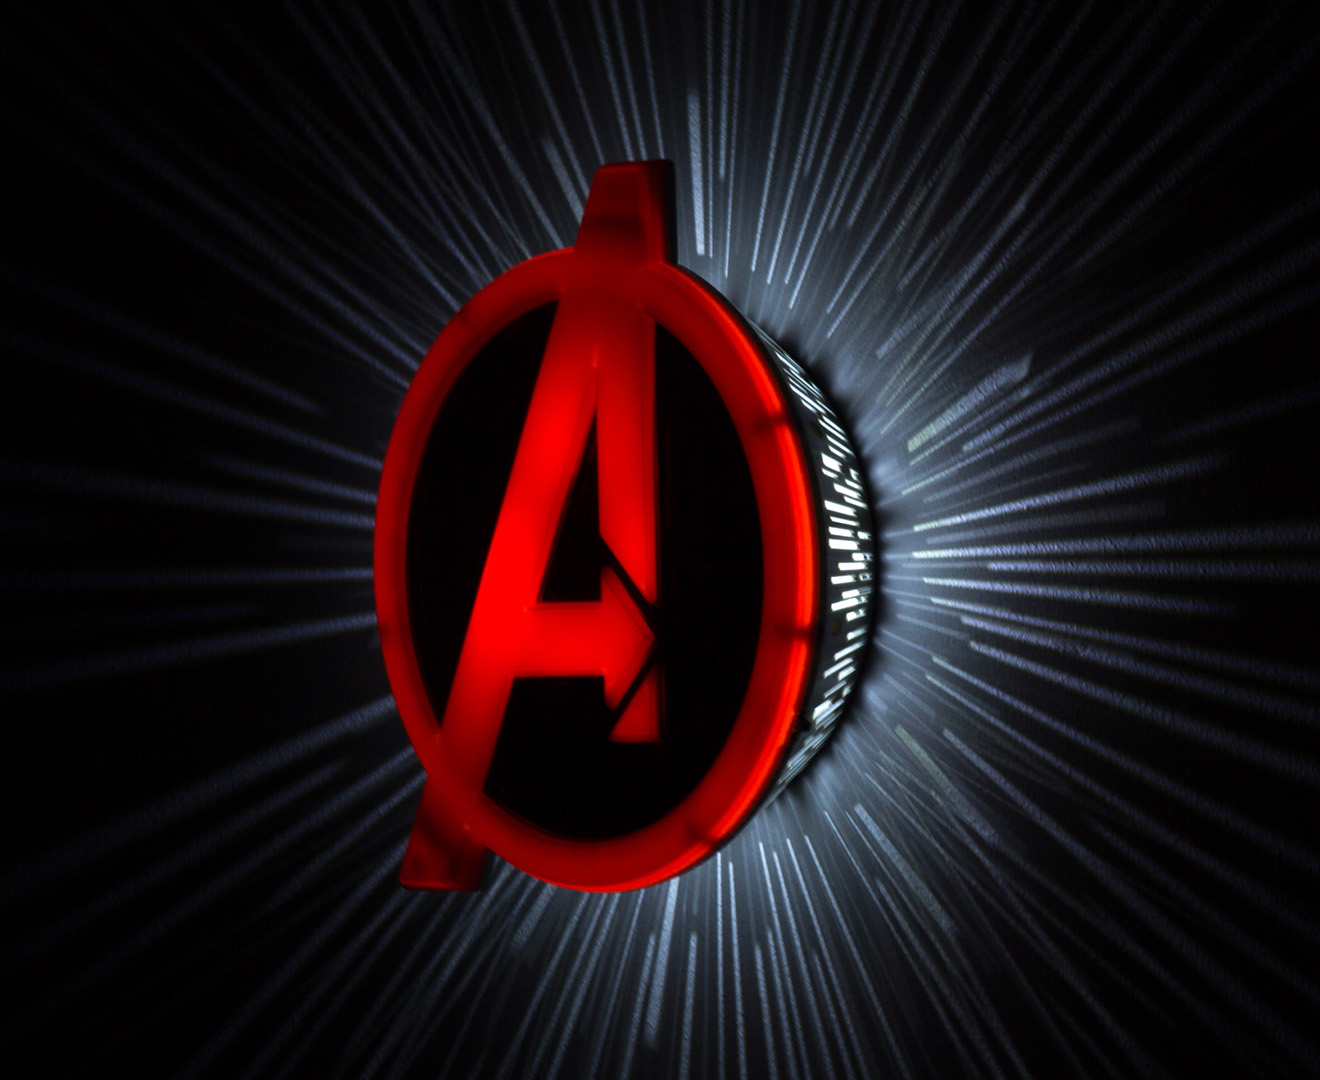 3D Marvel Avengers Shield Wall Light - Red eBay